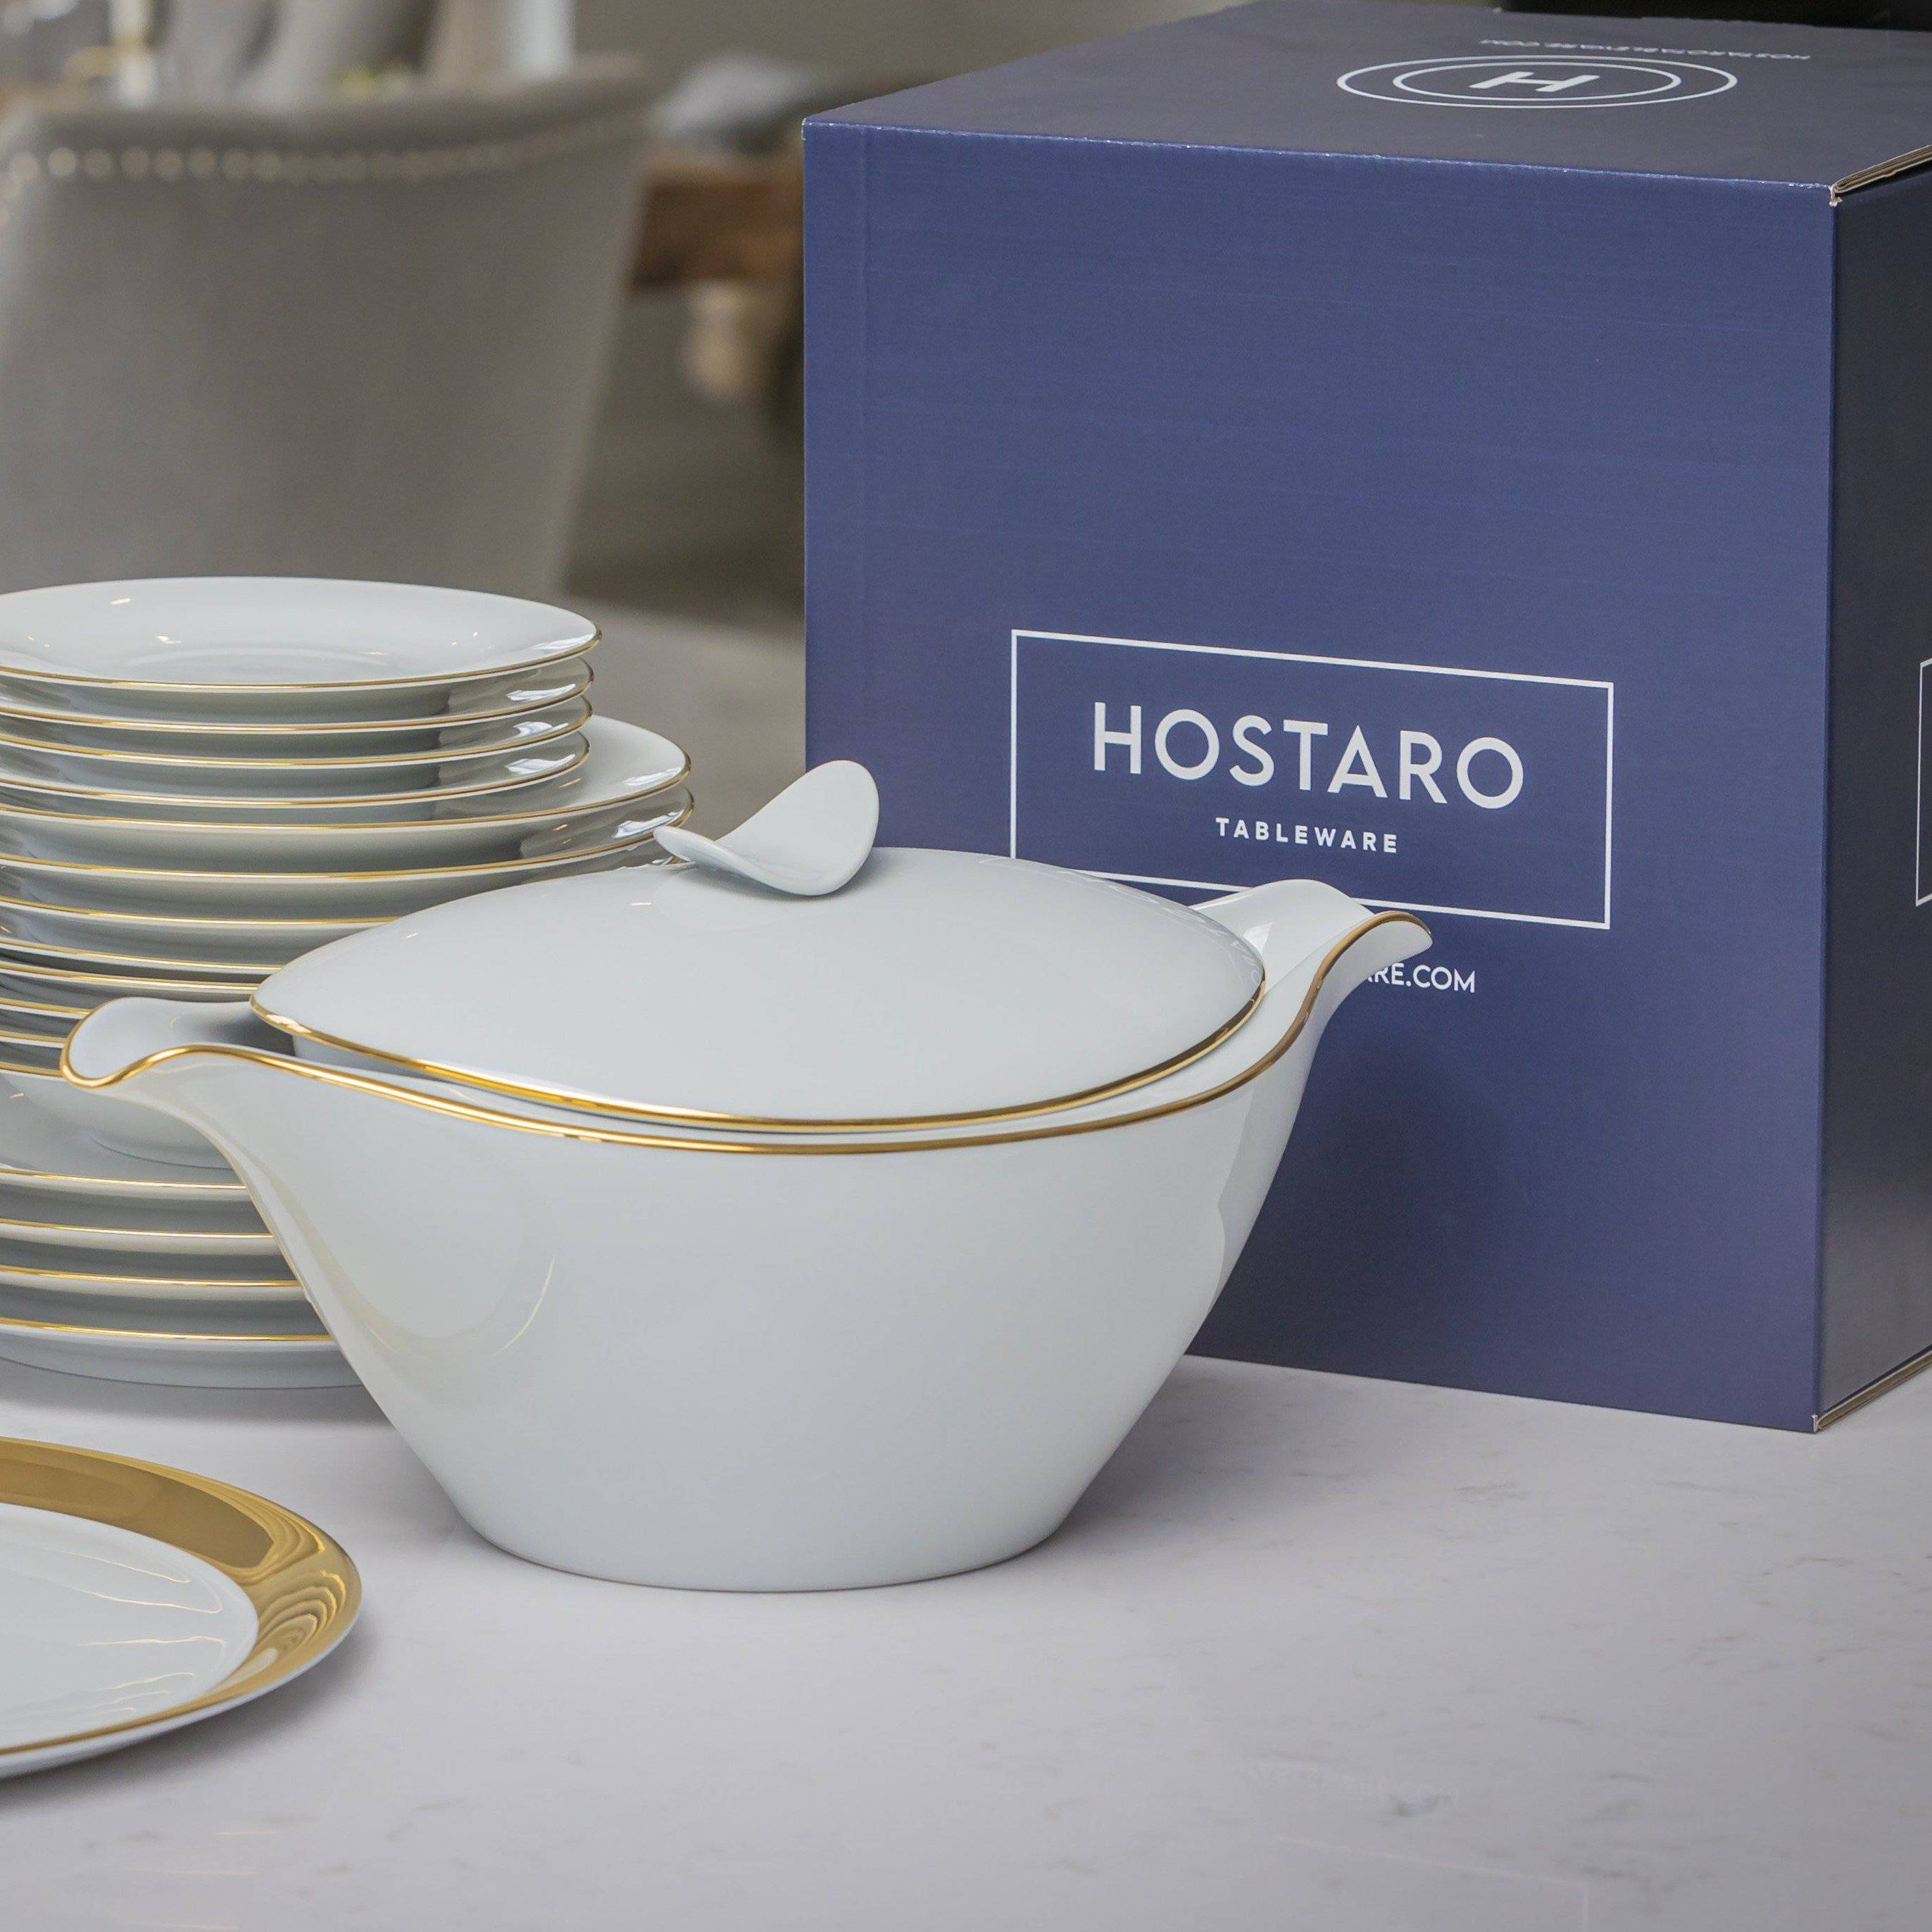 Tureen with gold rim - Hostaro Tableware